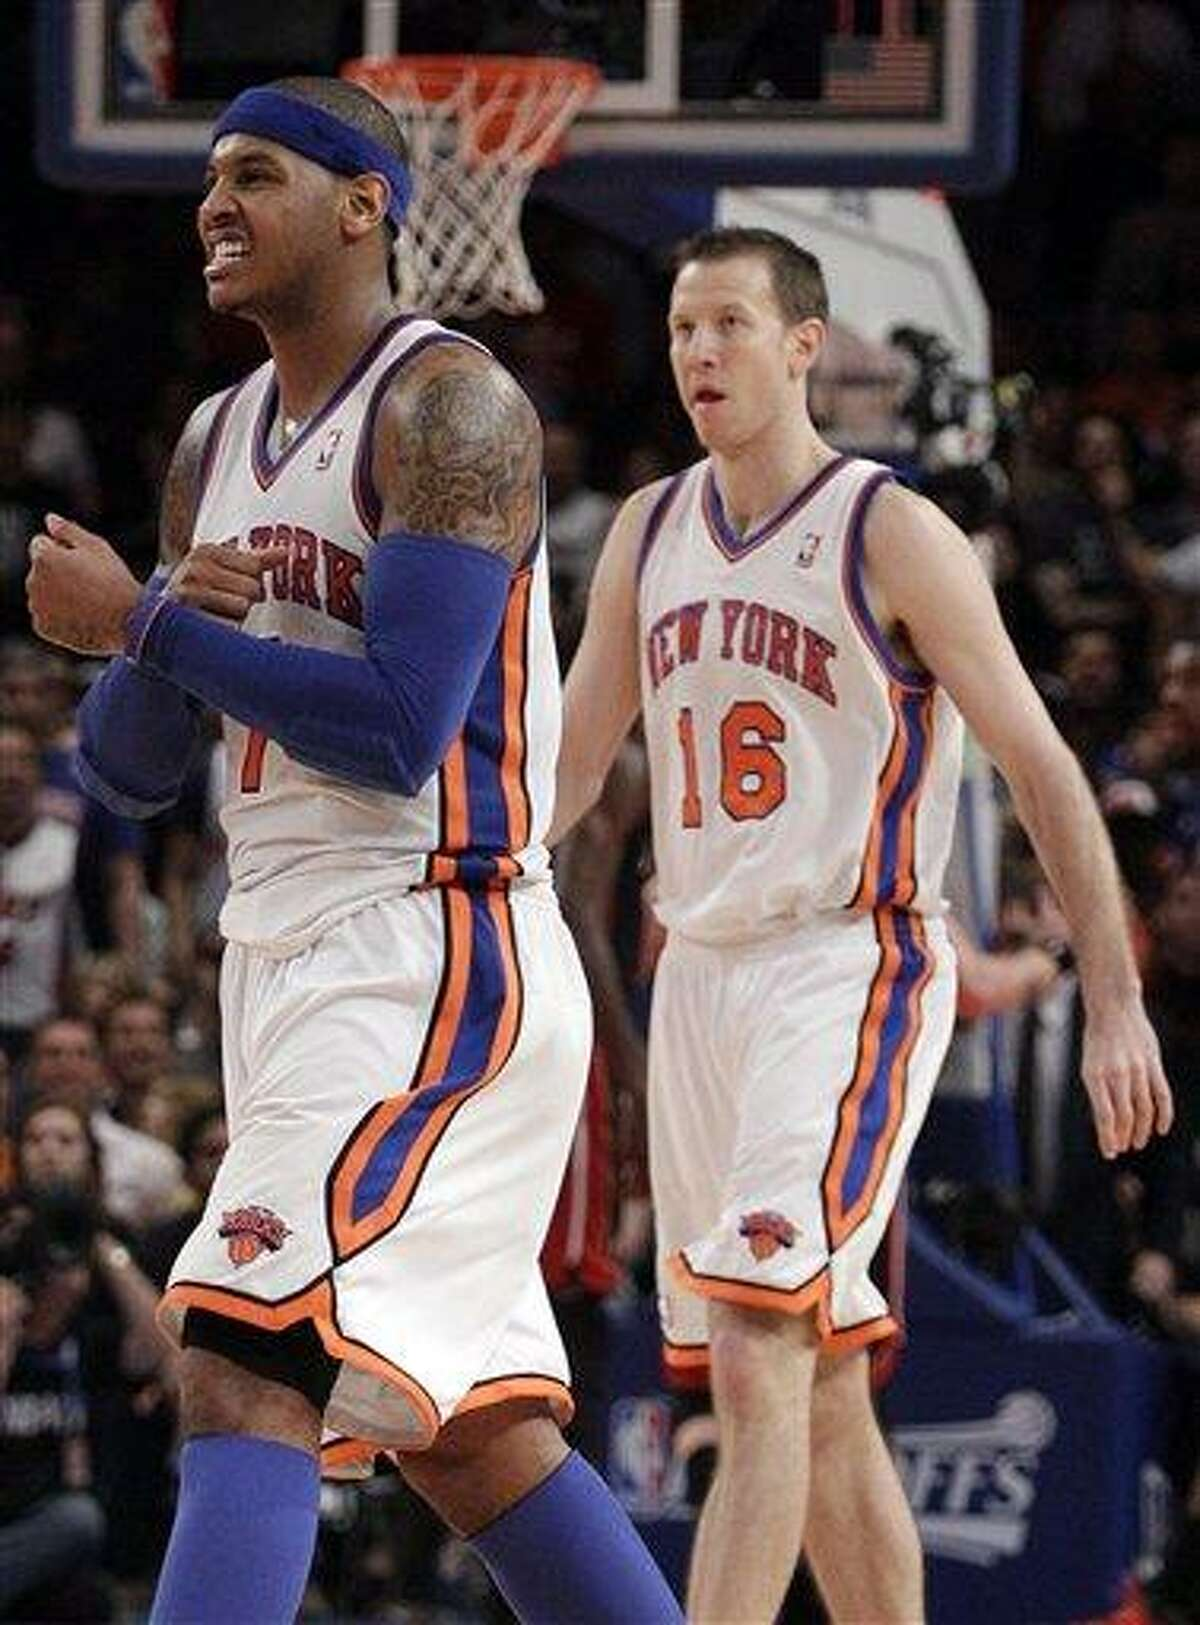 New York Knicks' Carmelo Anthony (7) and teammate Steve Novak (16) react during the second half of Game 4 of an NBA basketball first-round playoff series at Madison Square Garden, Sunday, May 6, 2012, in New York. The Knicks won the game 89-87. (AP Photo/Frank Franklin II)